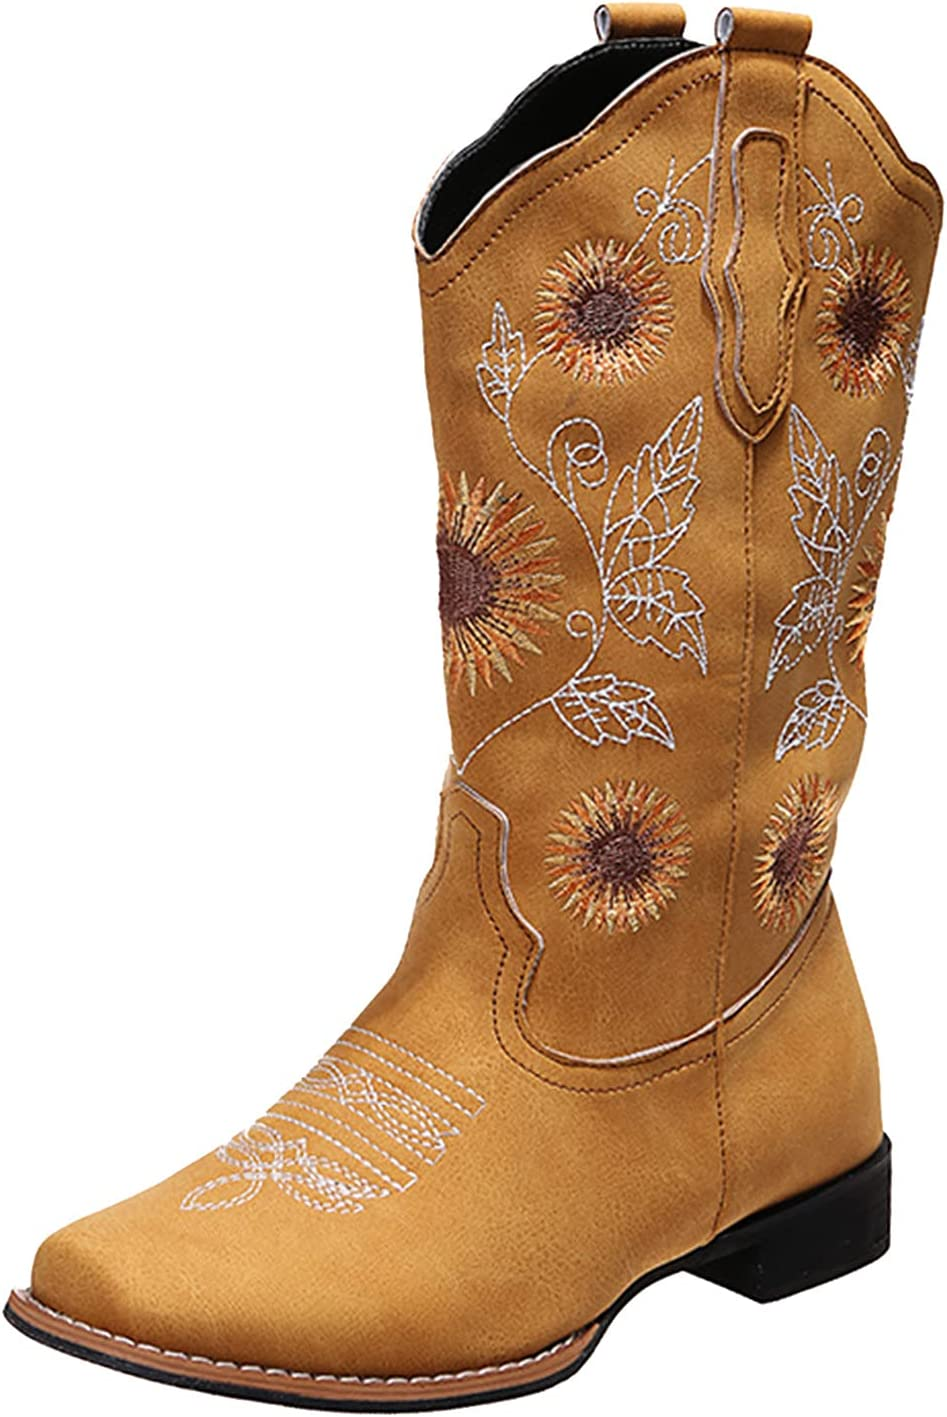 Western Boots for Women Cowboy Boots for Women Sunflowers Retro Print Embroidery Mid Calf Chunky Heel Square Toe Pull On Boots (J Yellow, 9.5-10)